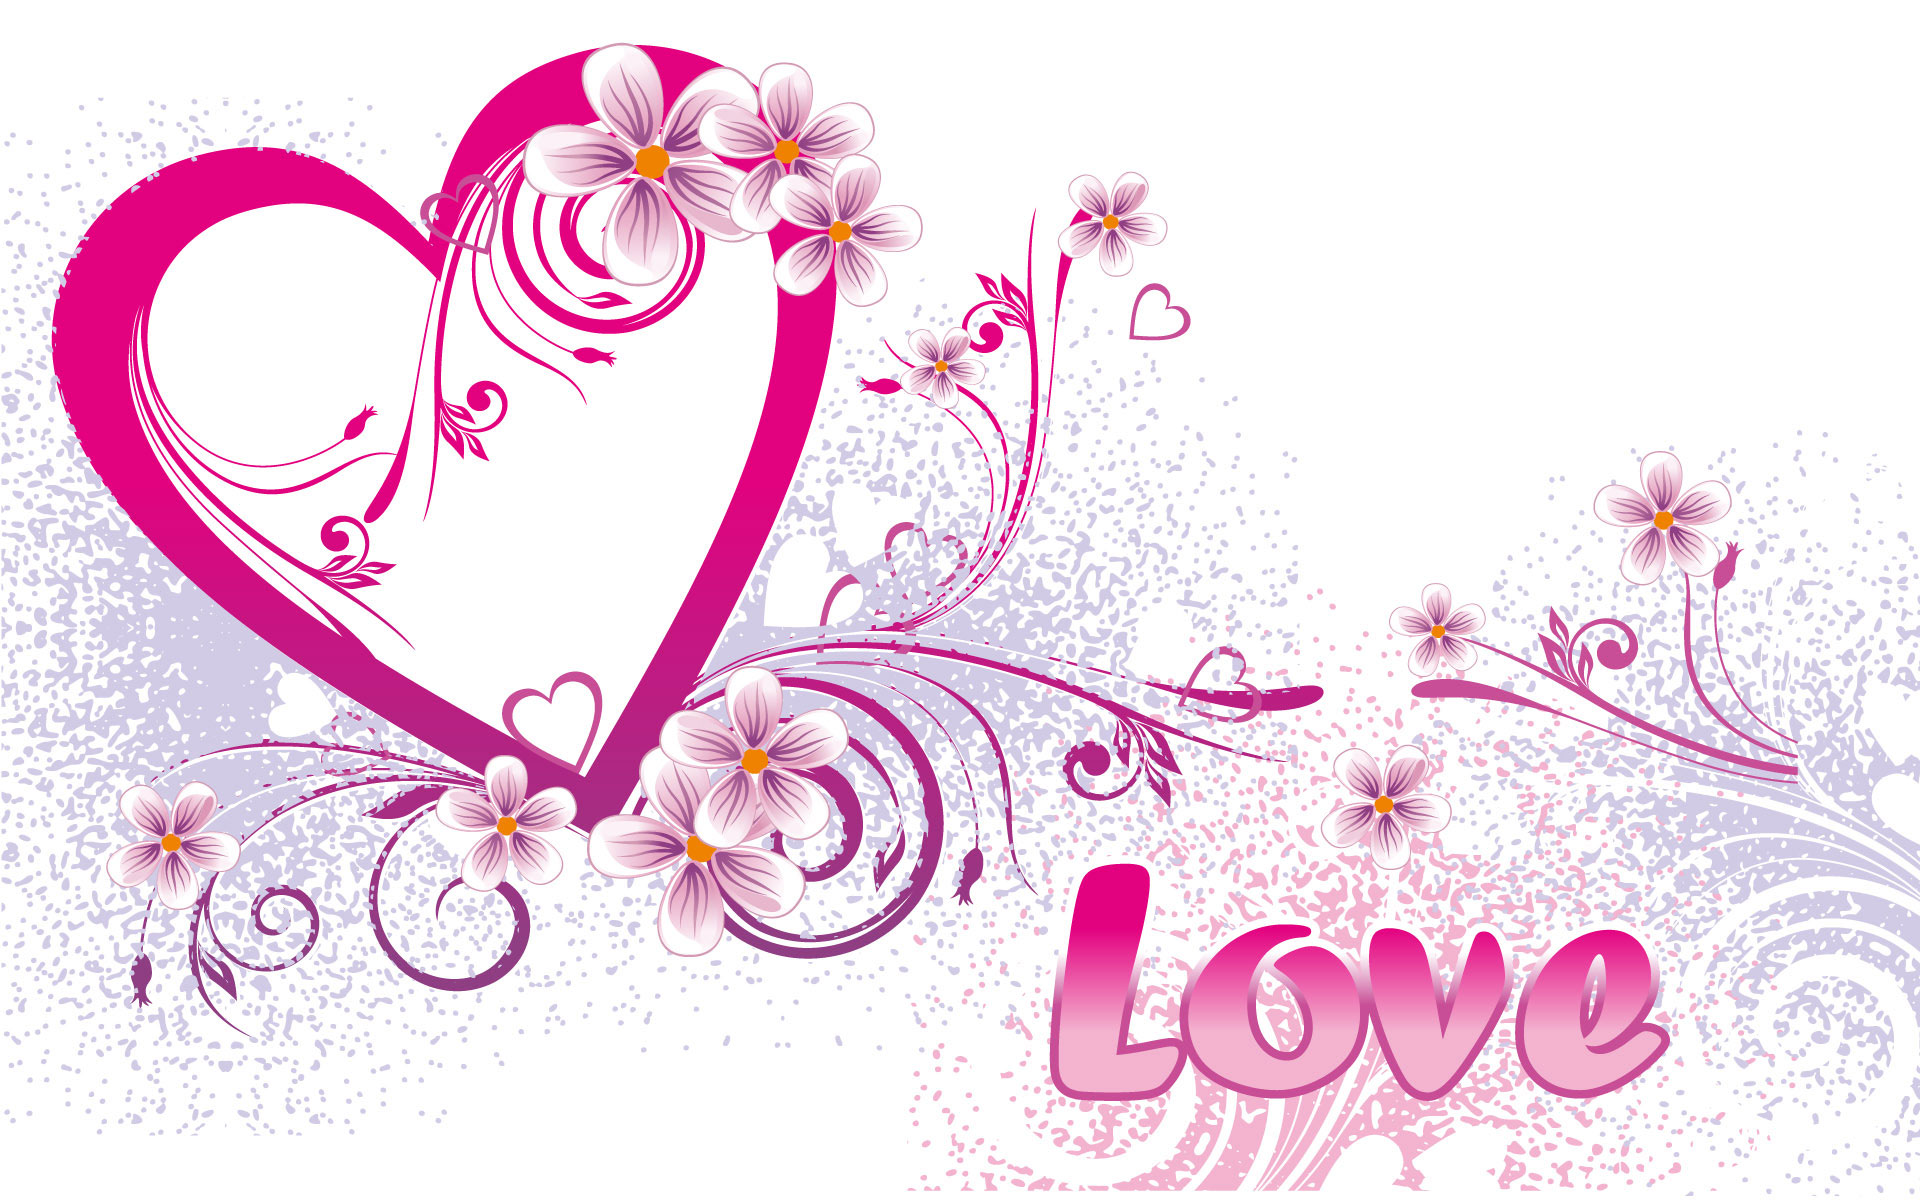 Love Heart Design Wallpaper : 35 Happy Valentine s Day HD Wallpapers, Backgrounds & Pictures